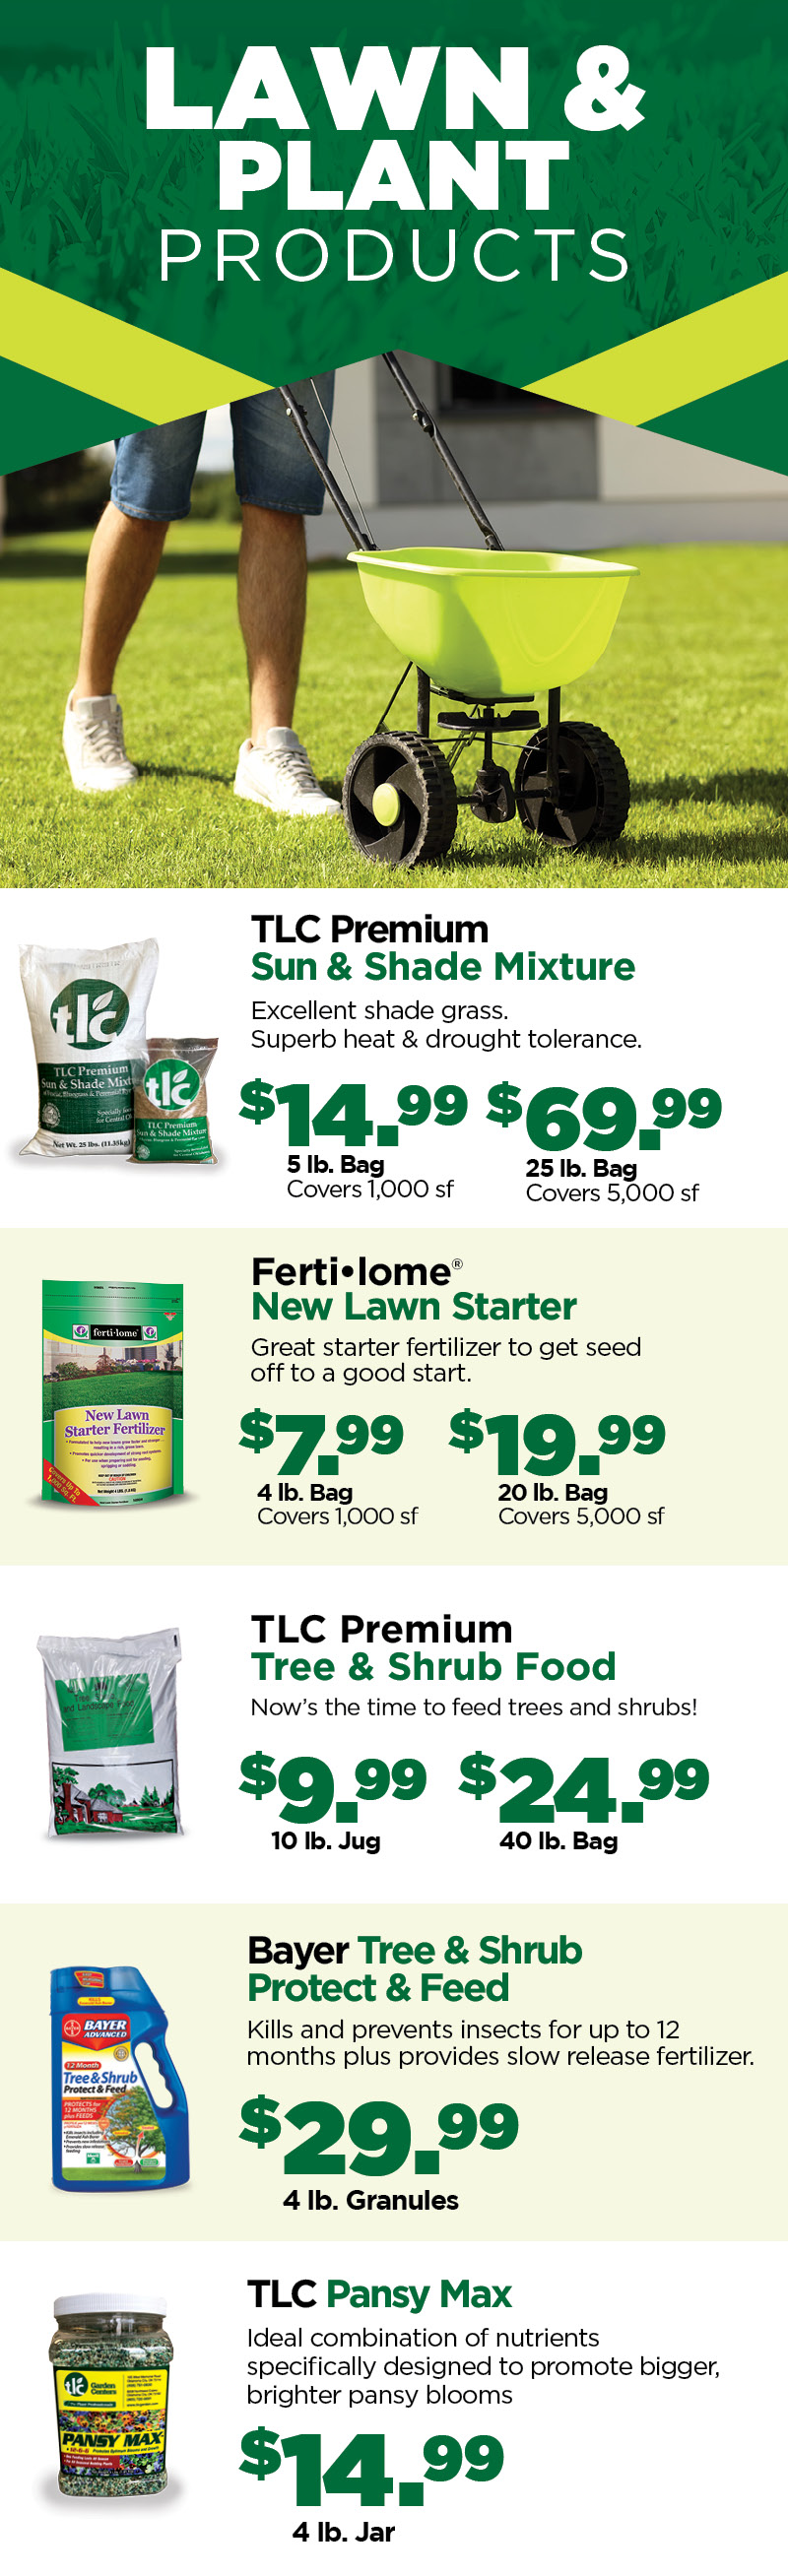 Lawn & Plant Products | TLC Garden Centers